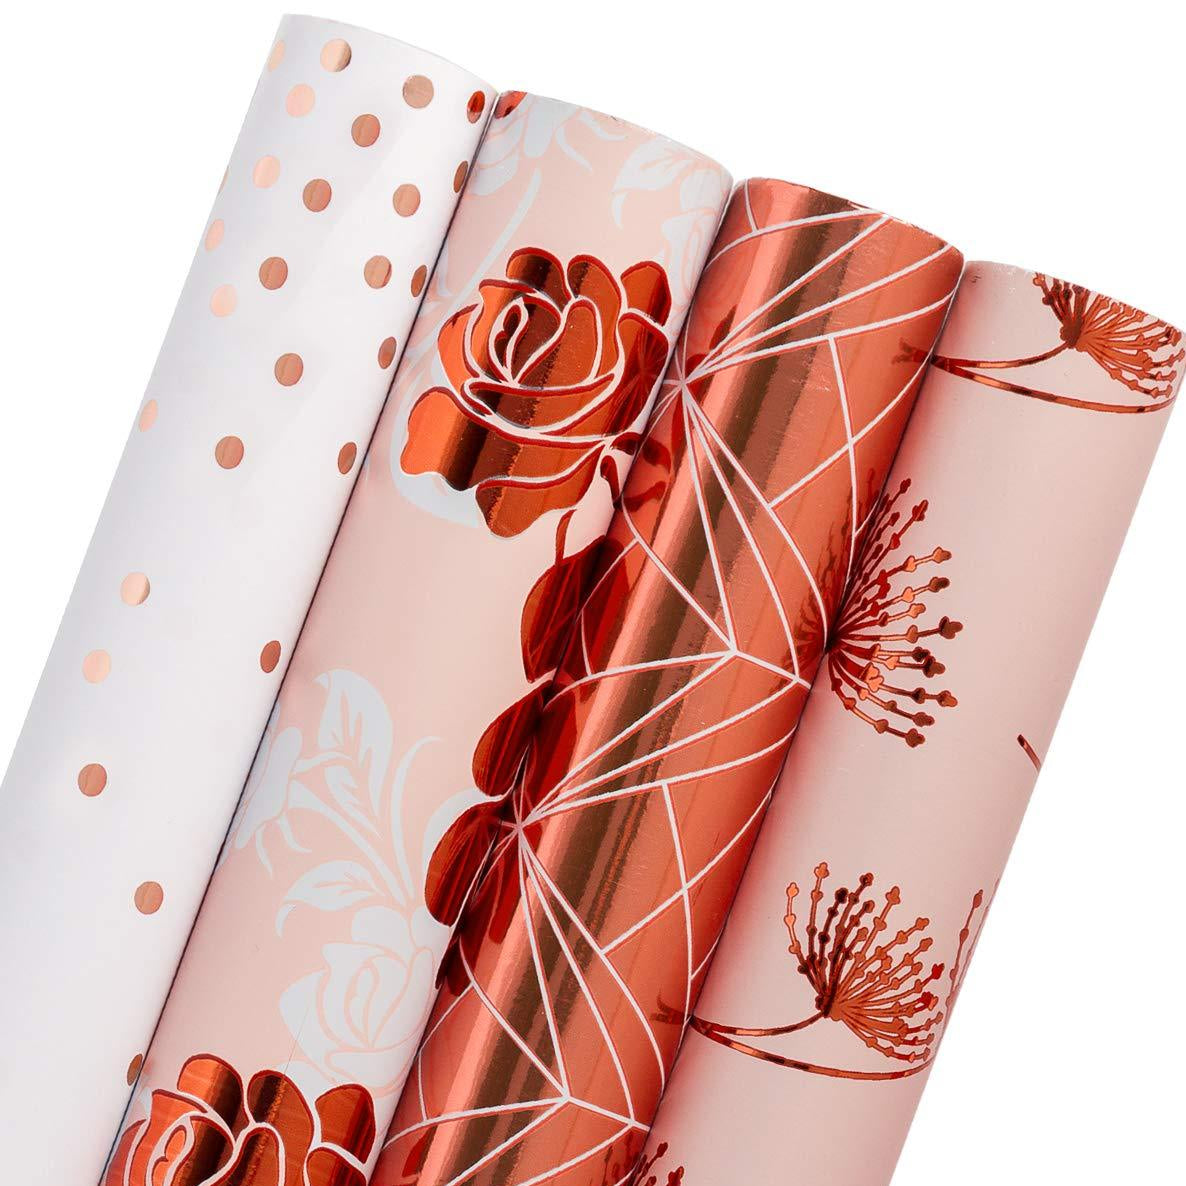 WRAPAHOLIC-Rose-Gold-Foil-Gift-Wrapping-Paper-Roll-4-Rolls-Set-1